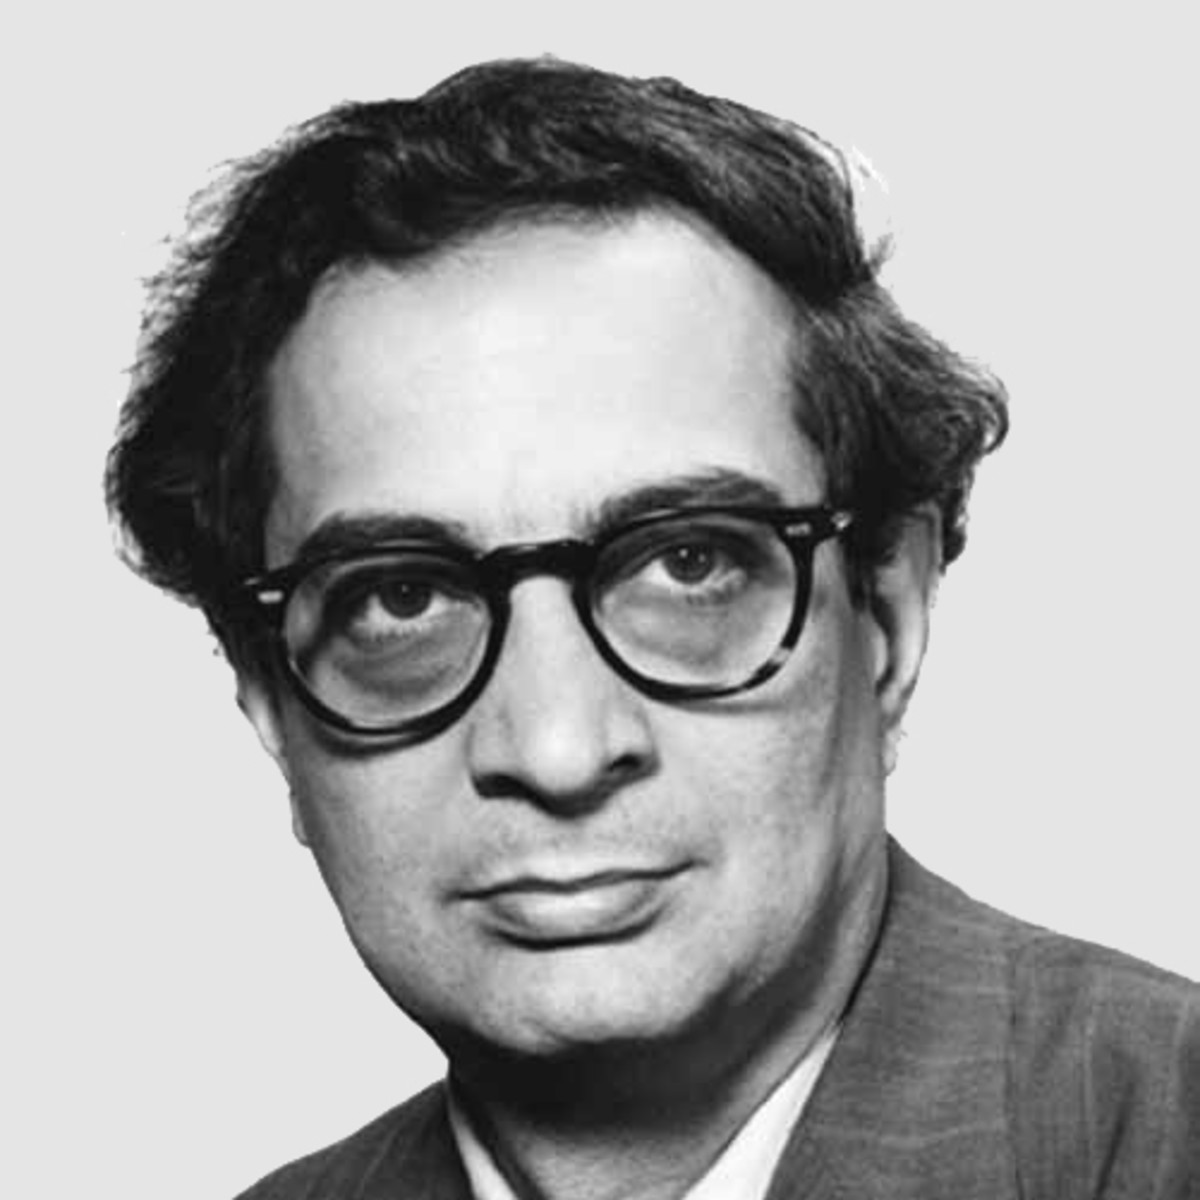 Ali Javan - his work on gas lasers changed the technological world we live in